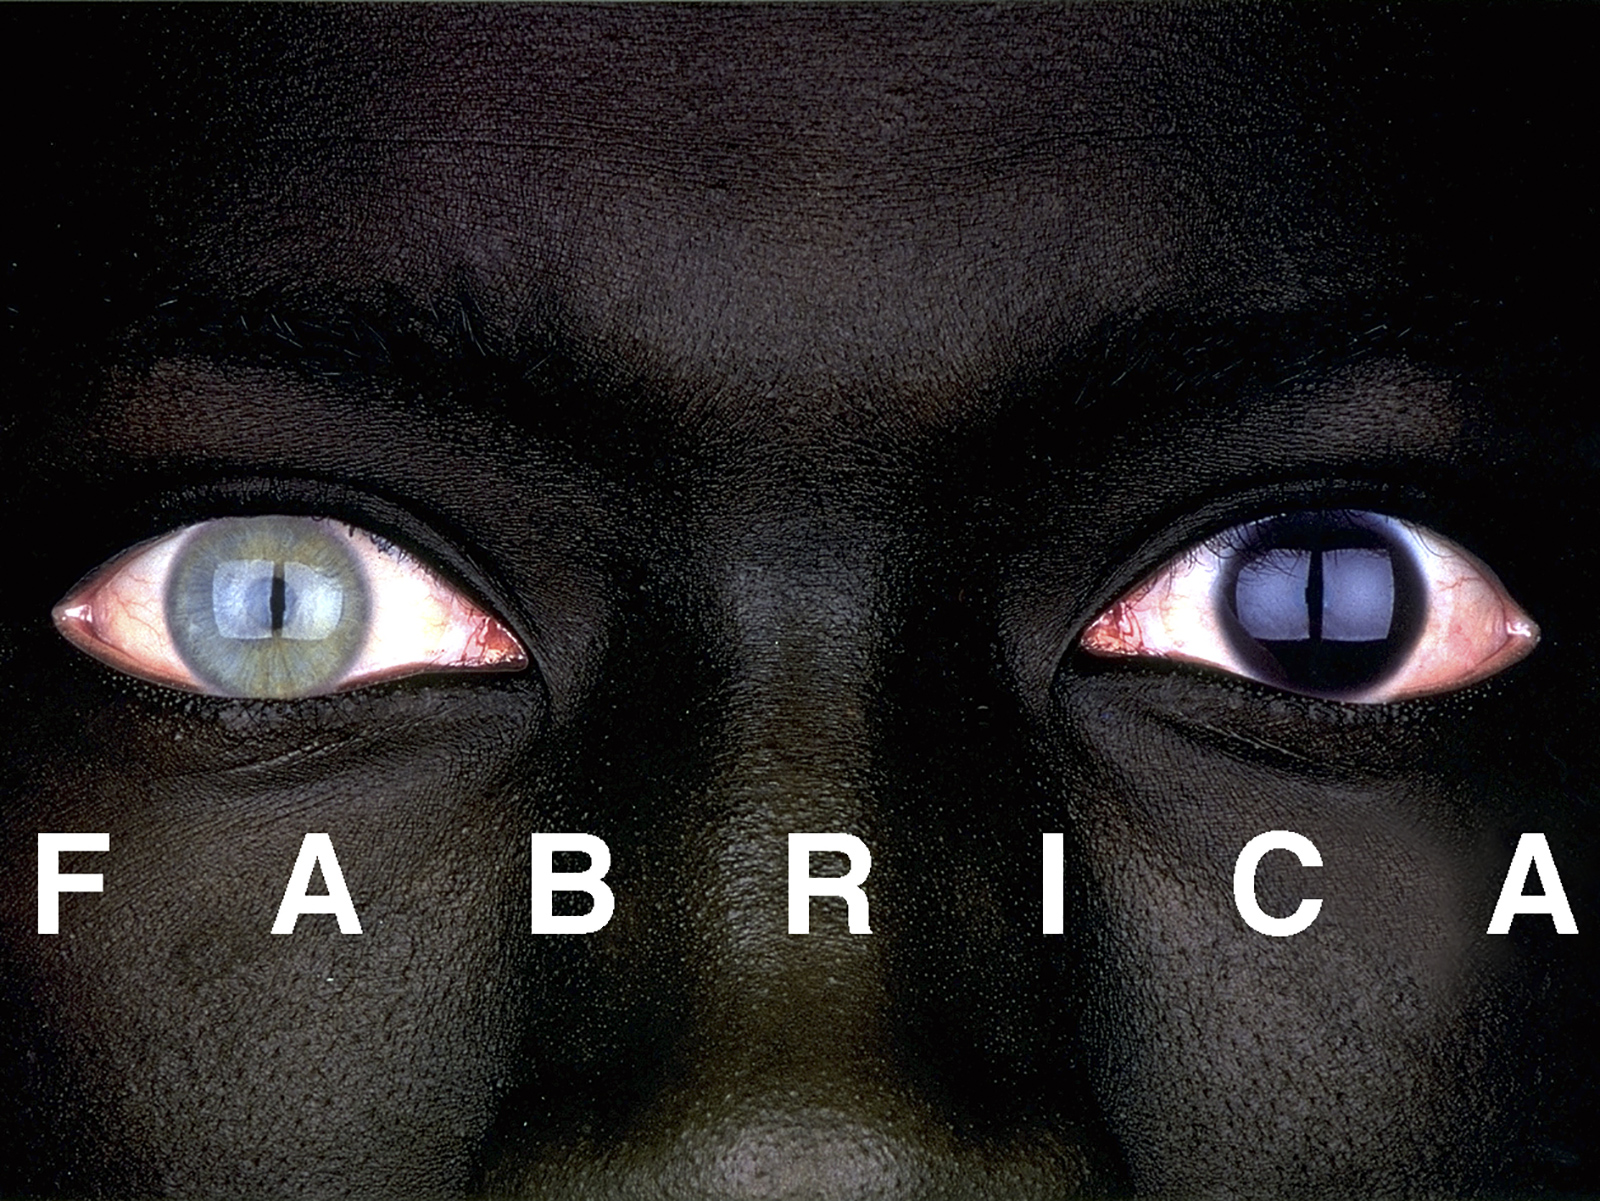 Luciano Benetton, Oliviero Toscani and Fabrica's team present Fabrica's new direction